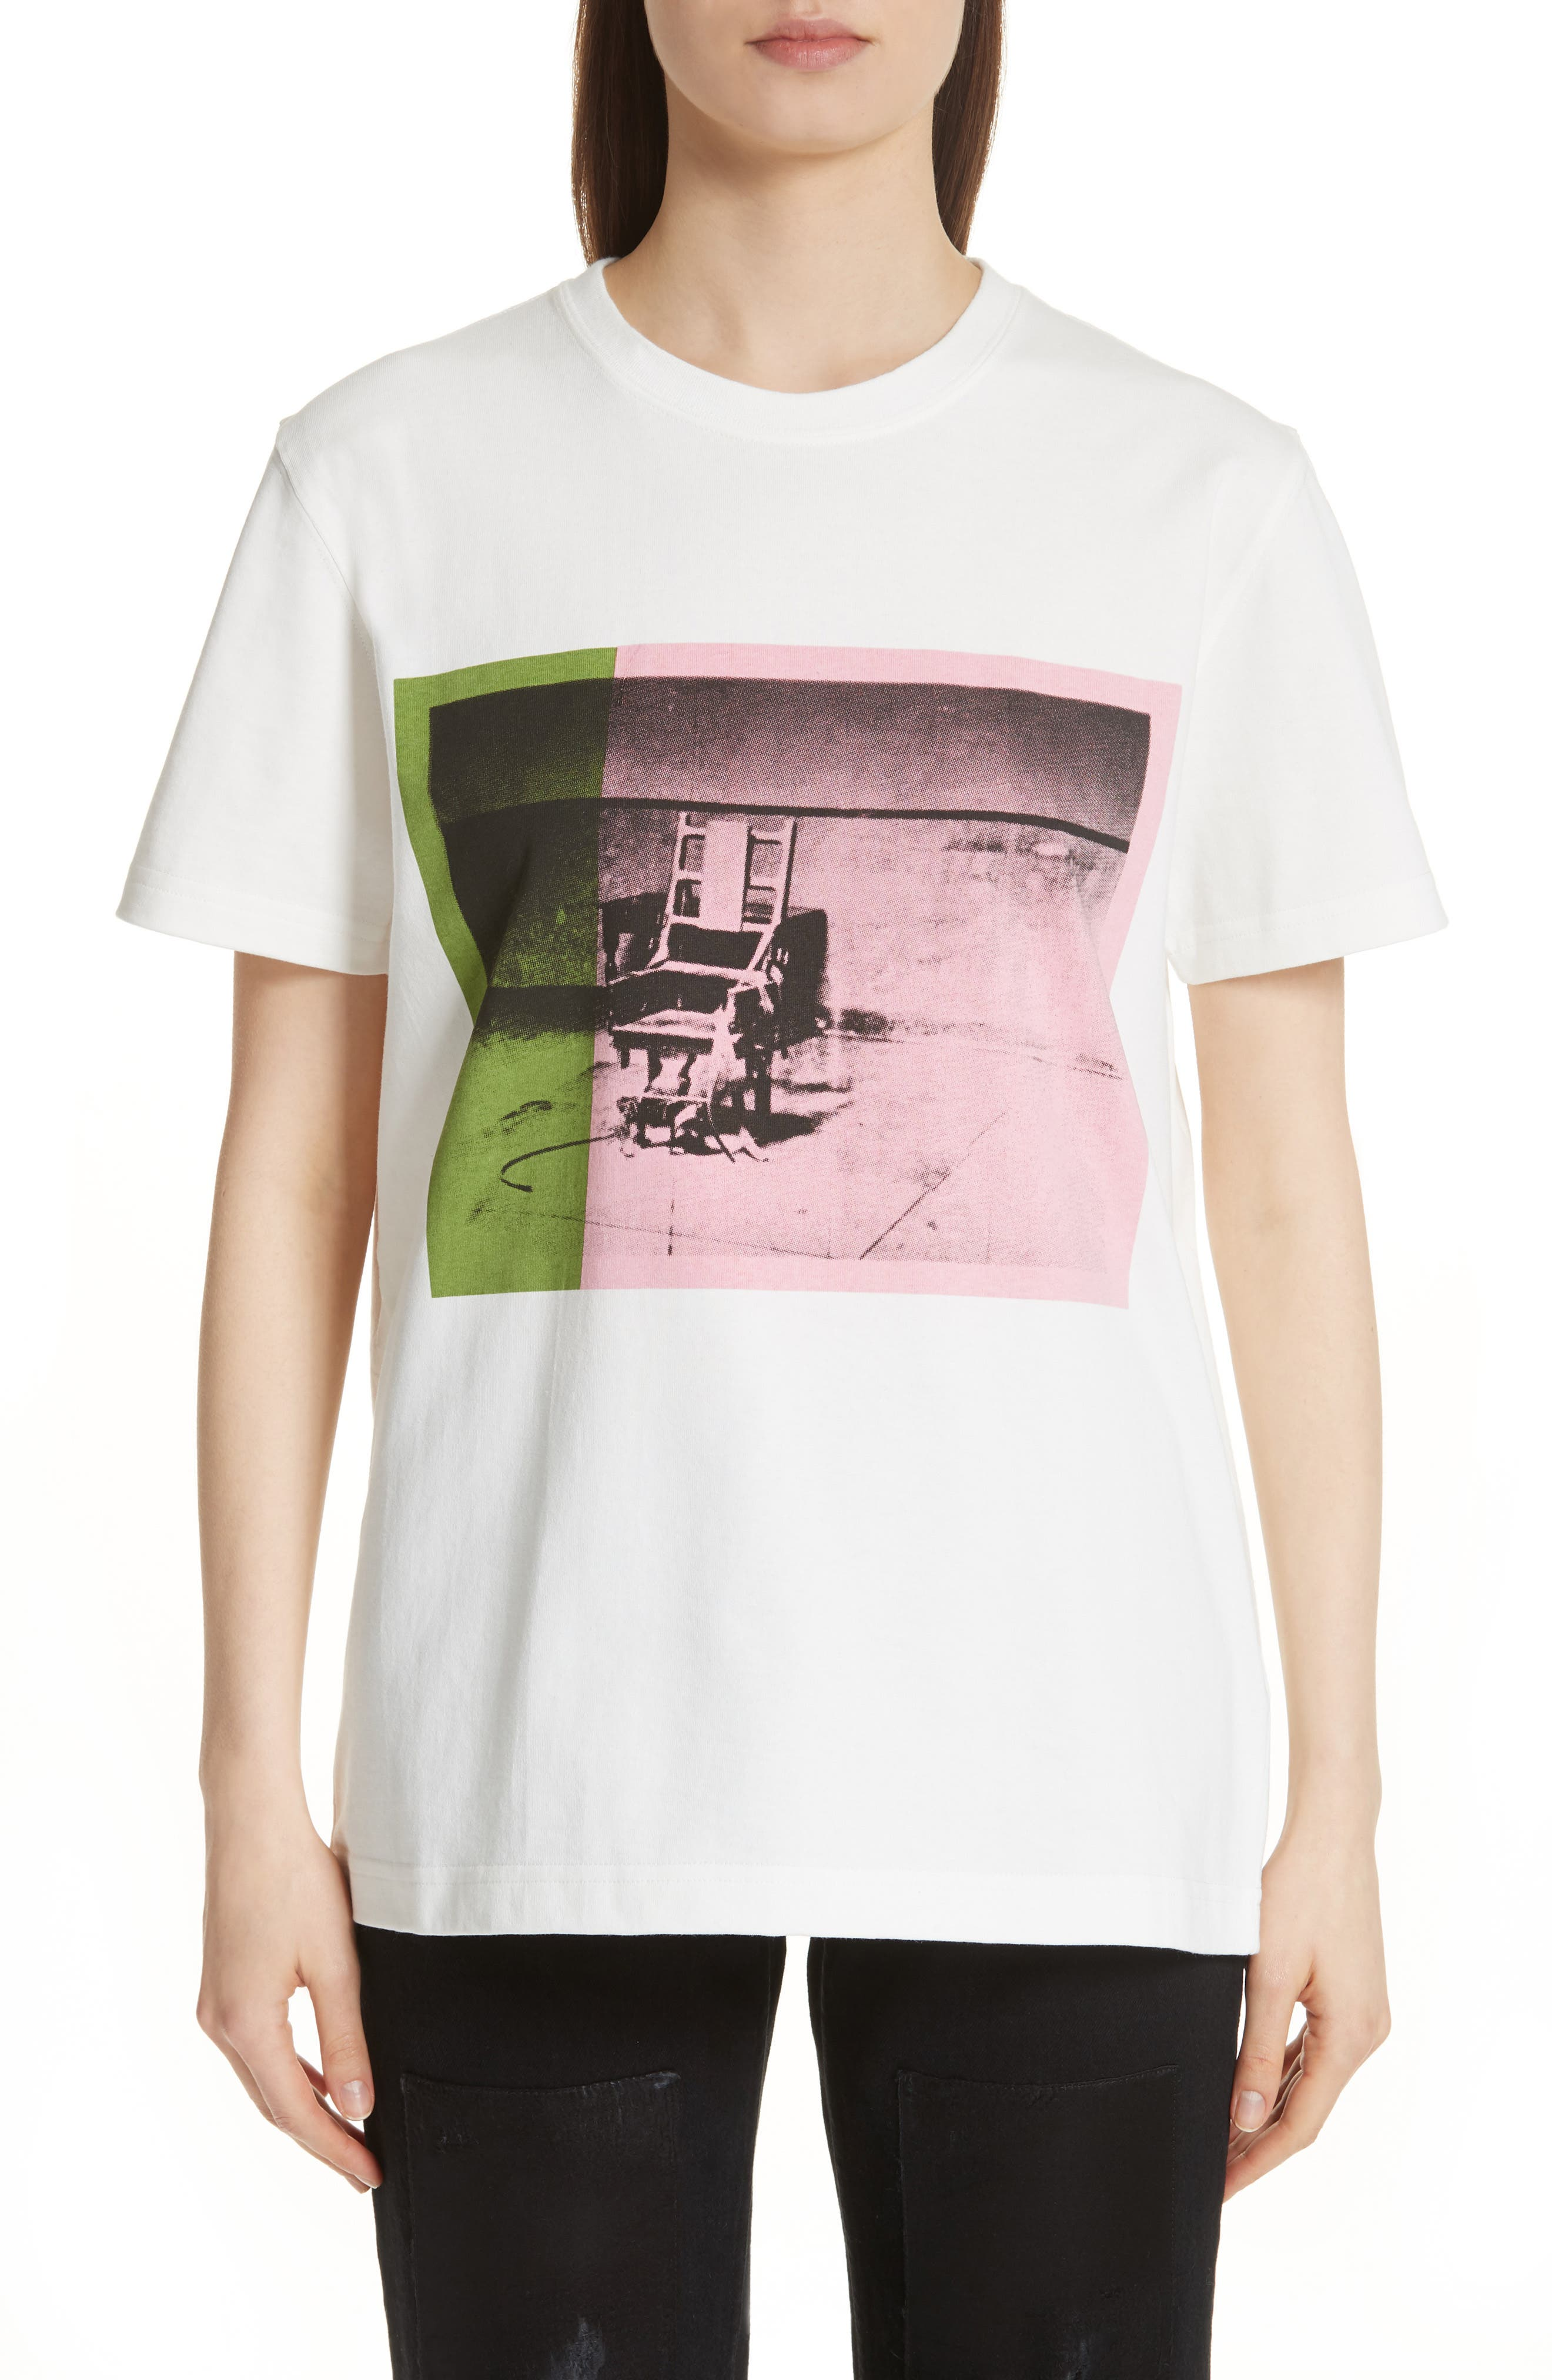 x Andy Warhol Foundation Electric Chair Graphic Tee,                             Main thumbnail 1, color,                             White/ Pink/ Green